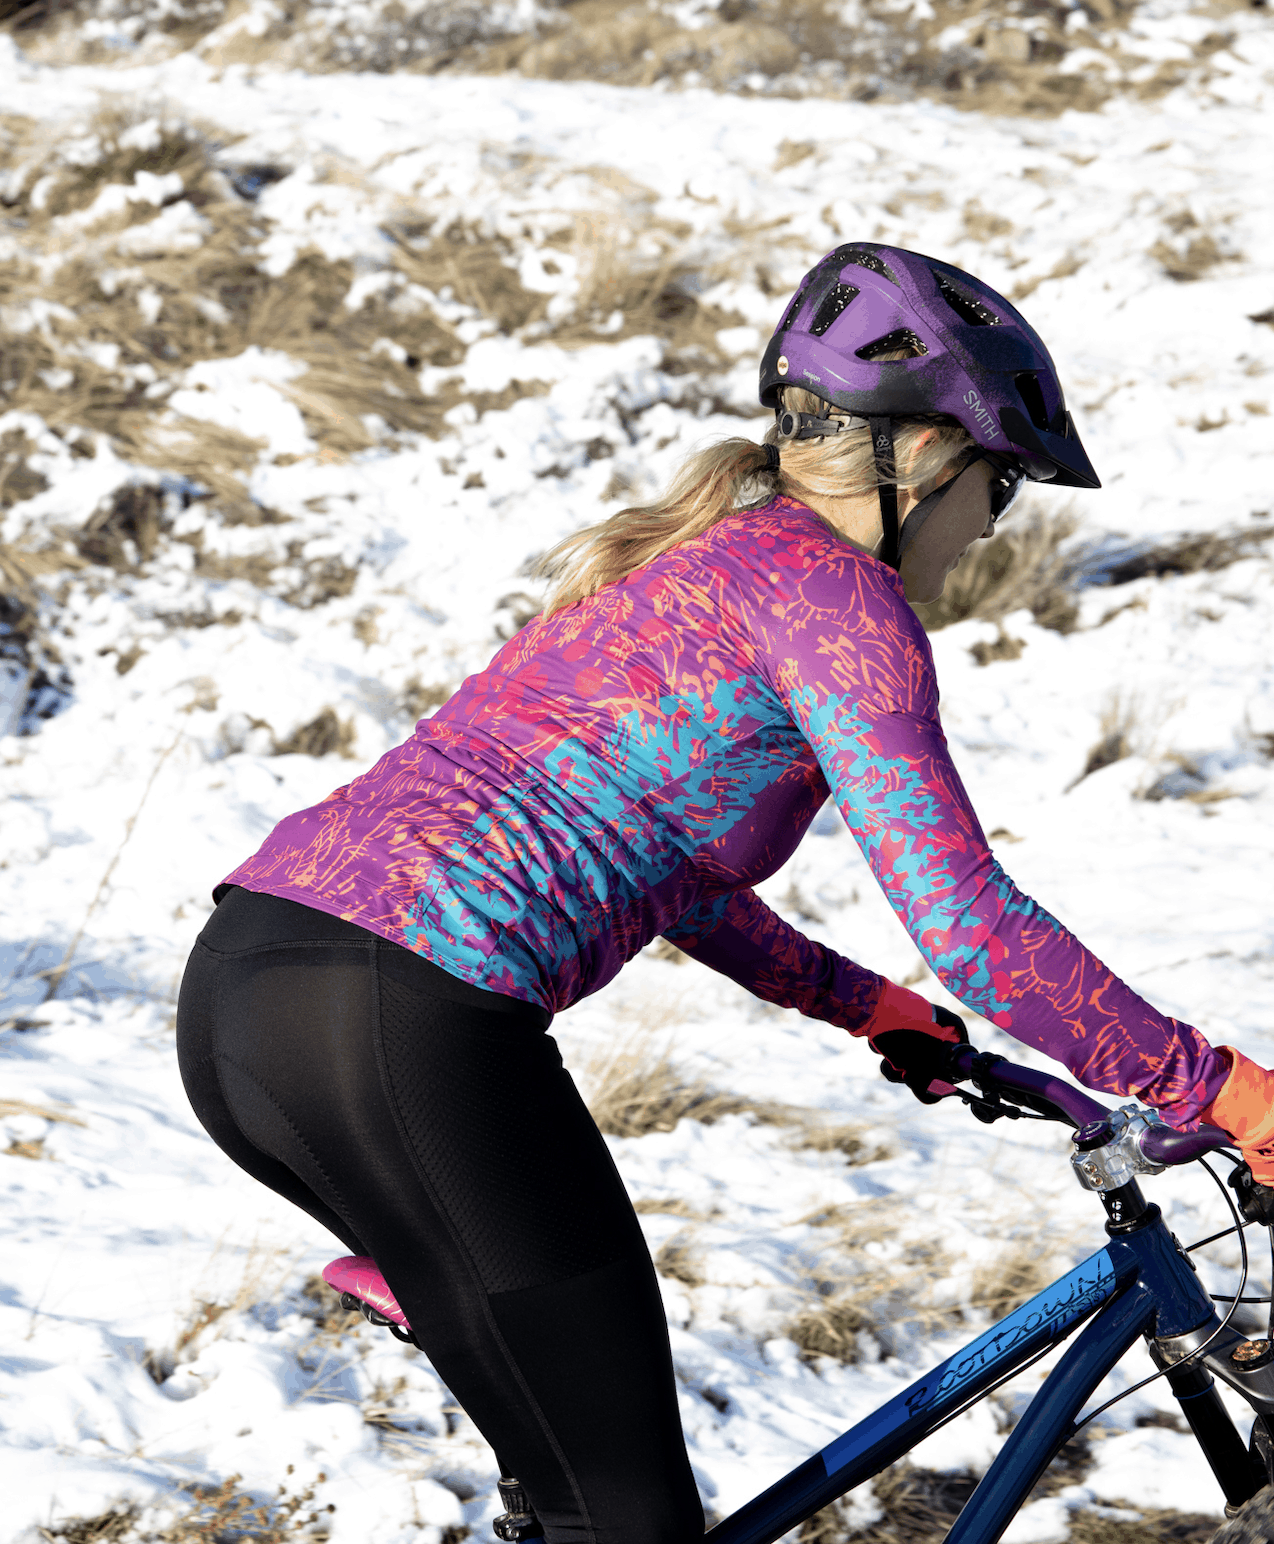 Woman riding a mountain bike in a snowy landscape, wearing Terry cycling top and Thermal cycling tights